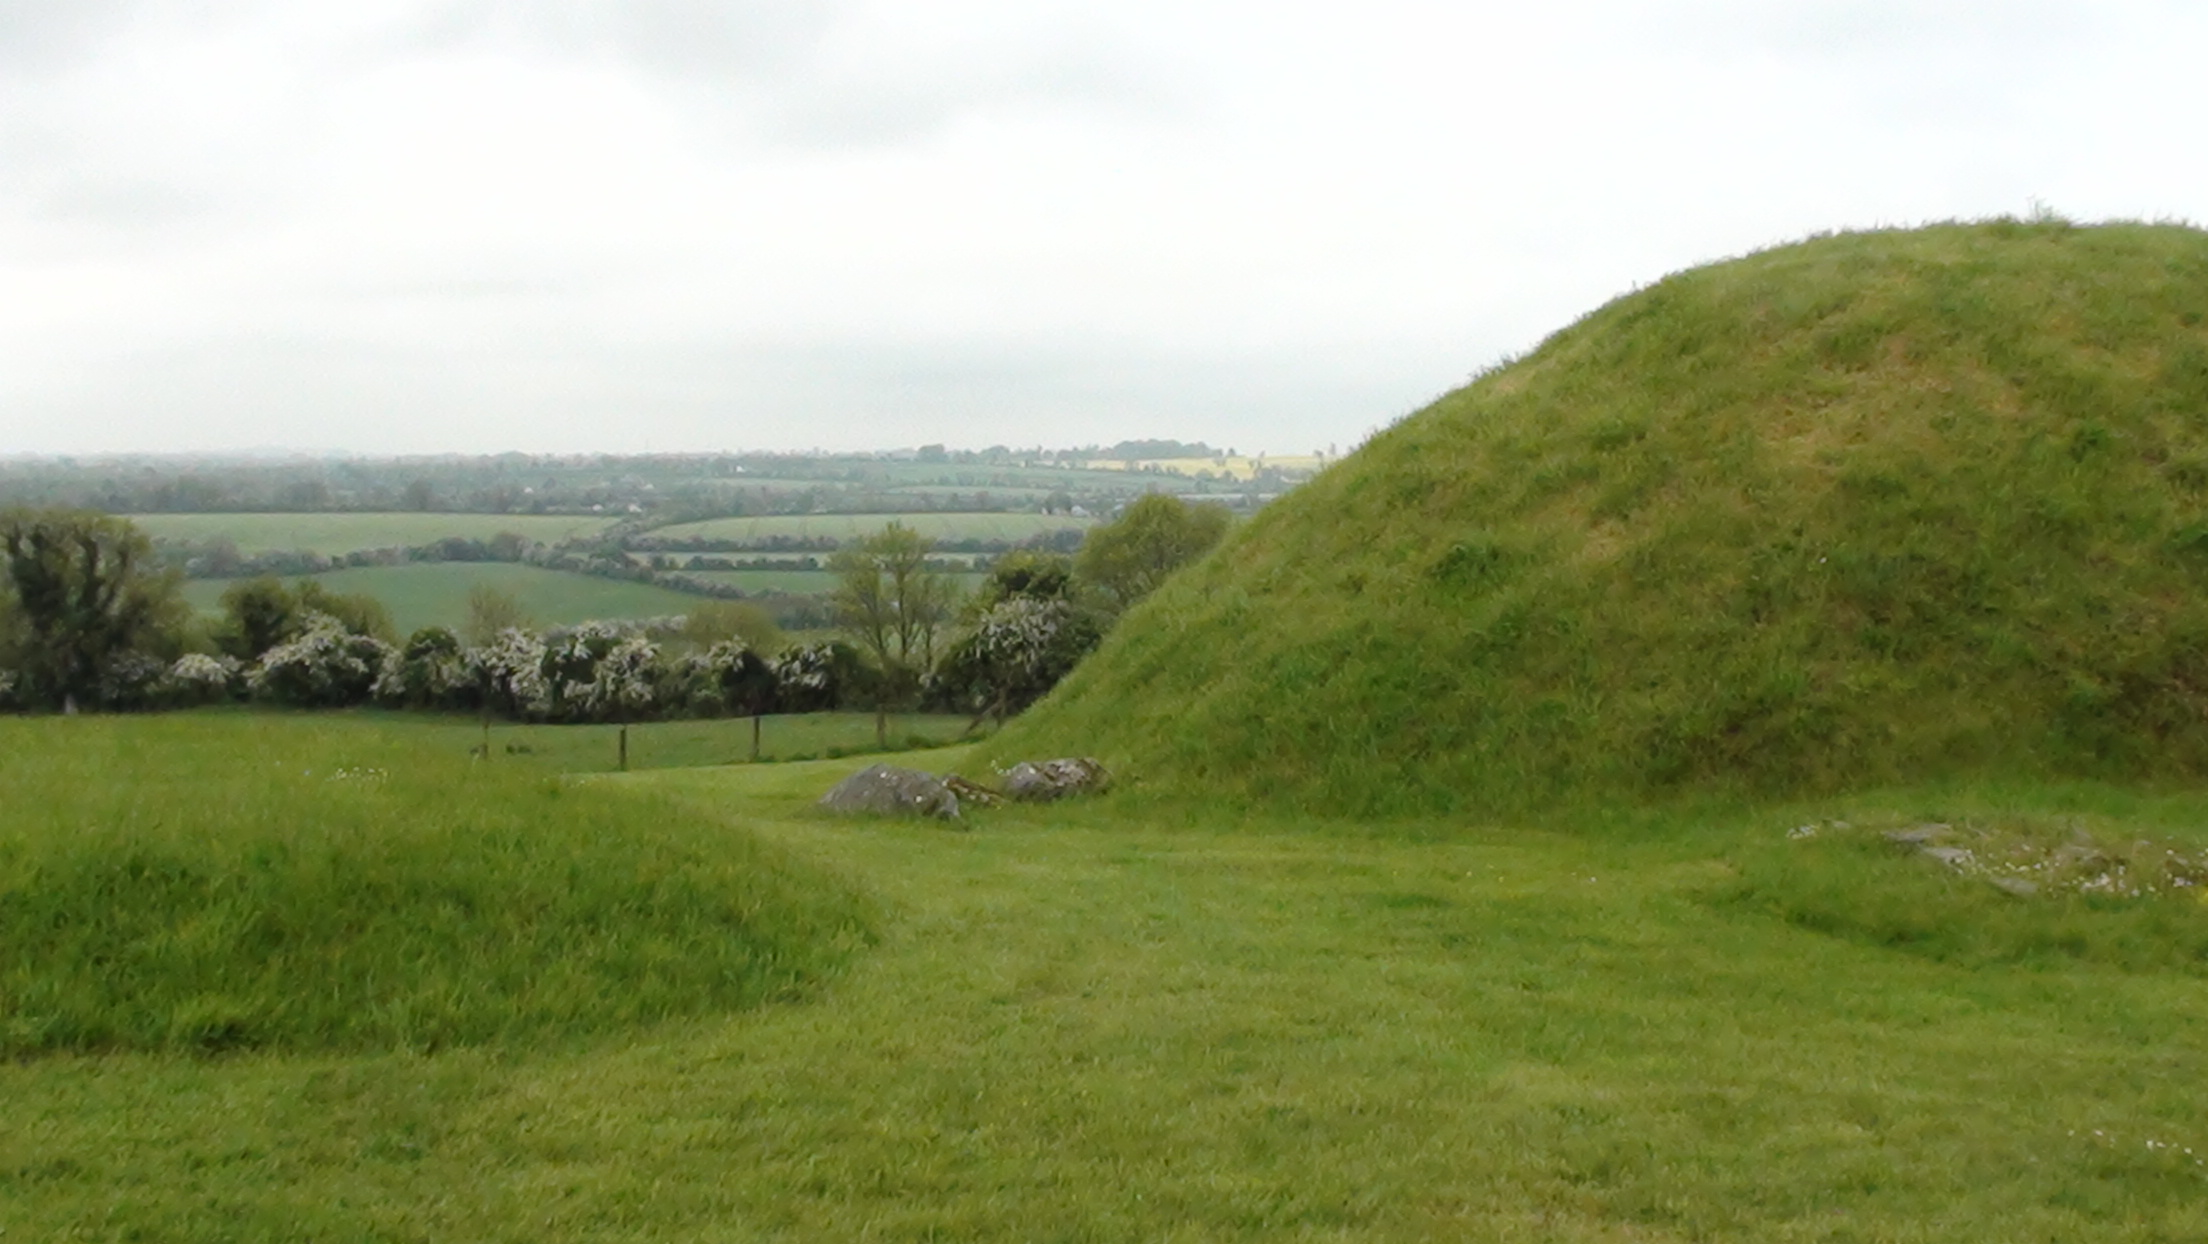 The temple mound of Knowth